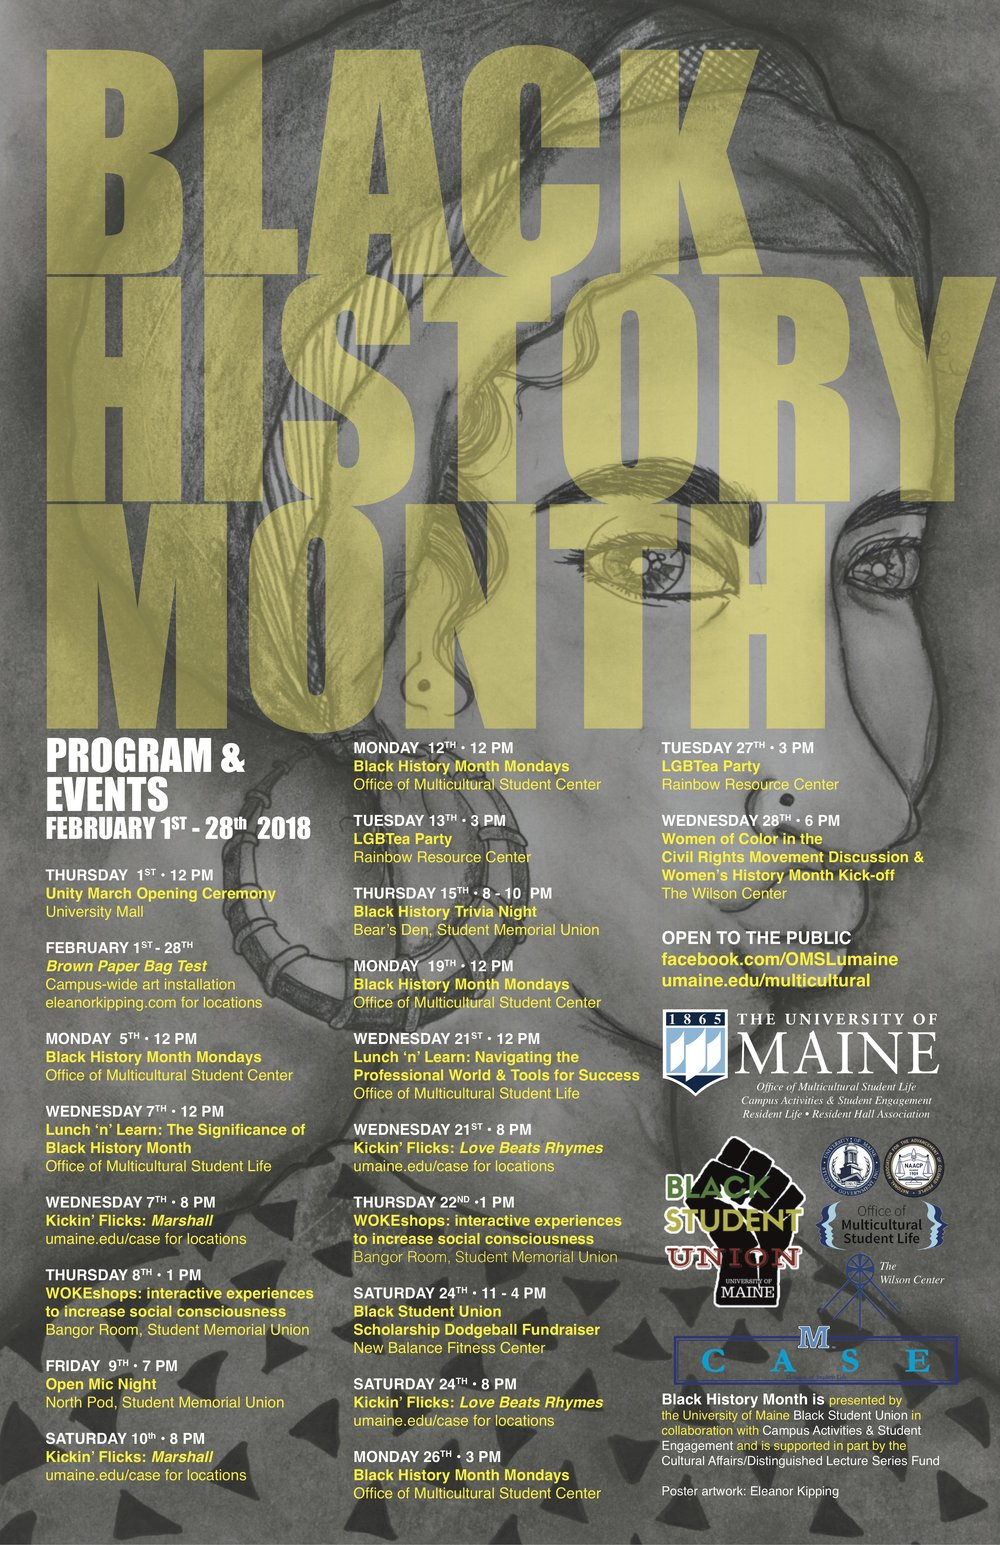 University of Maine, Black Student Union, Black History Month